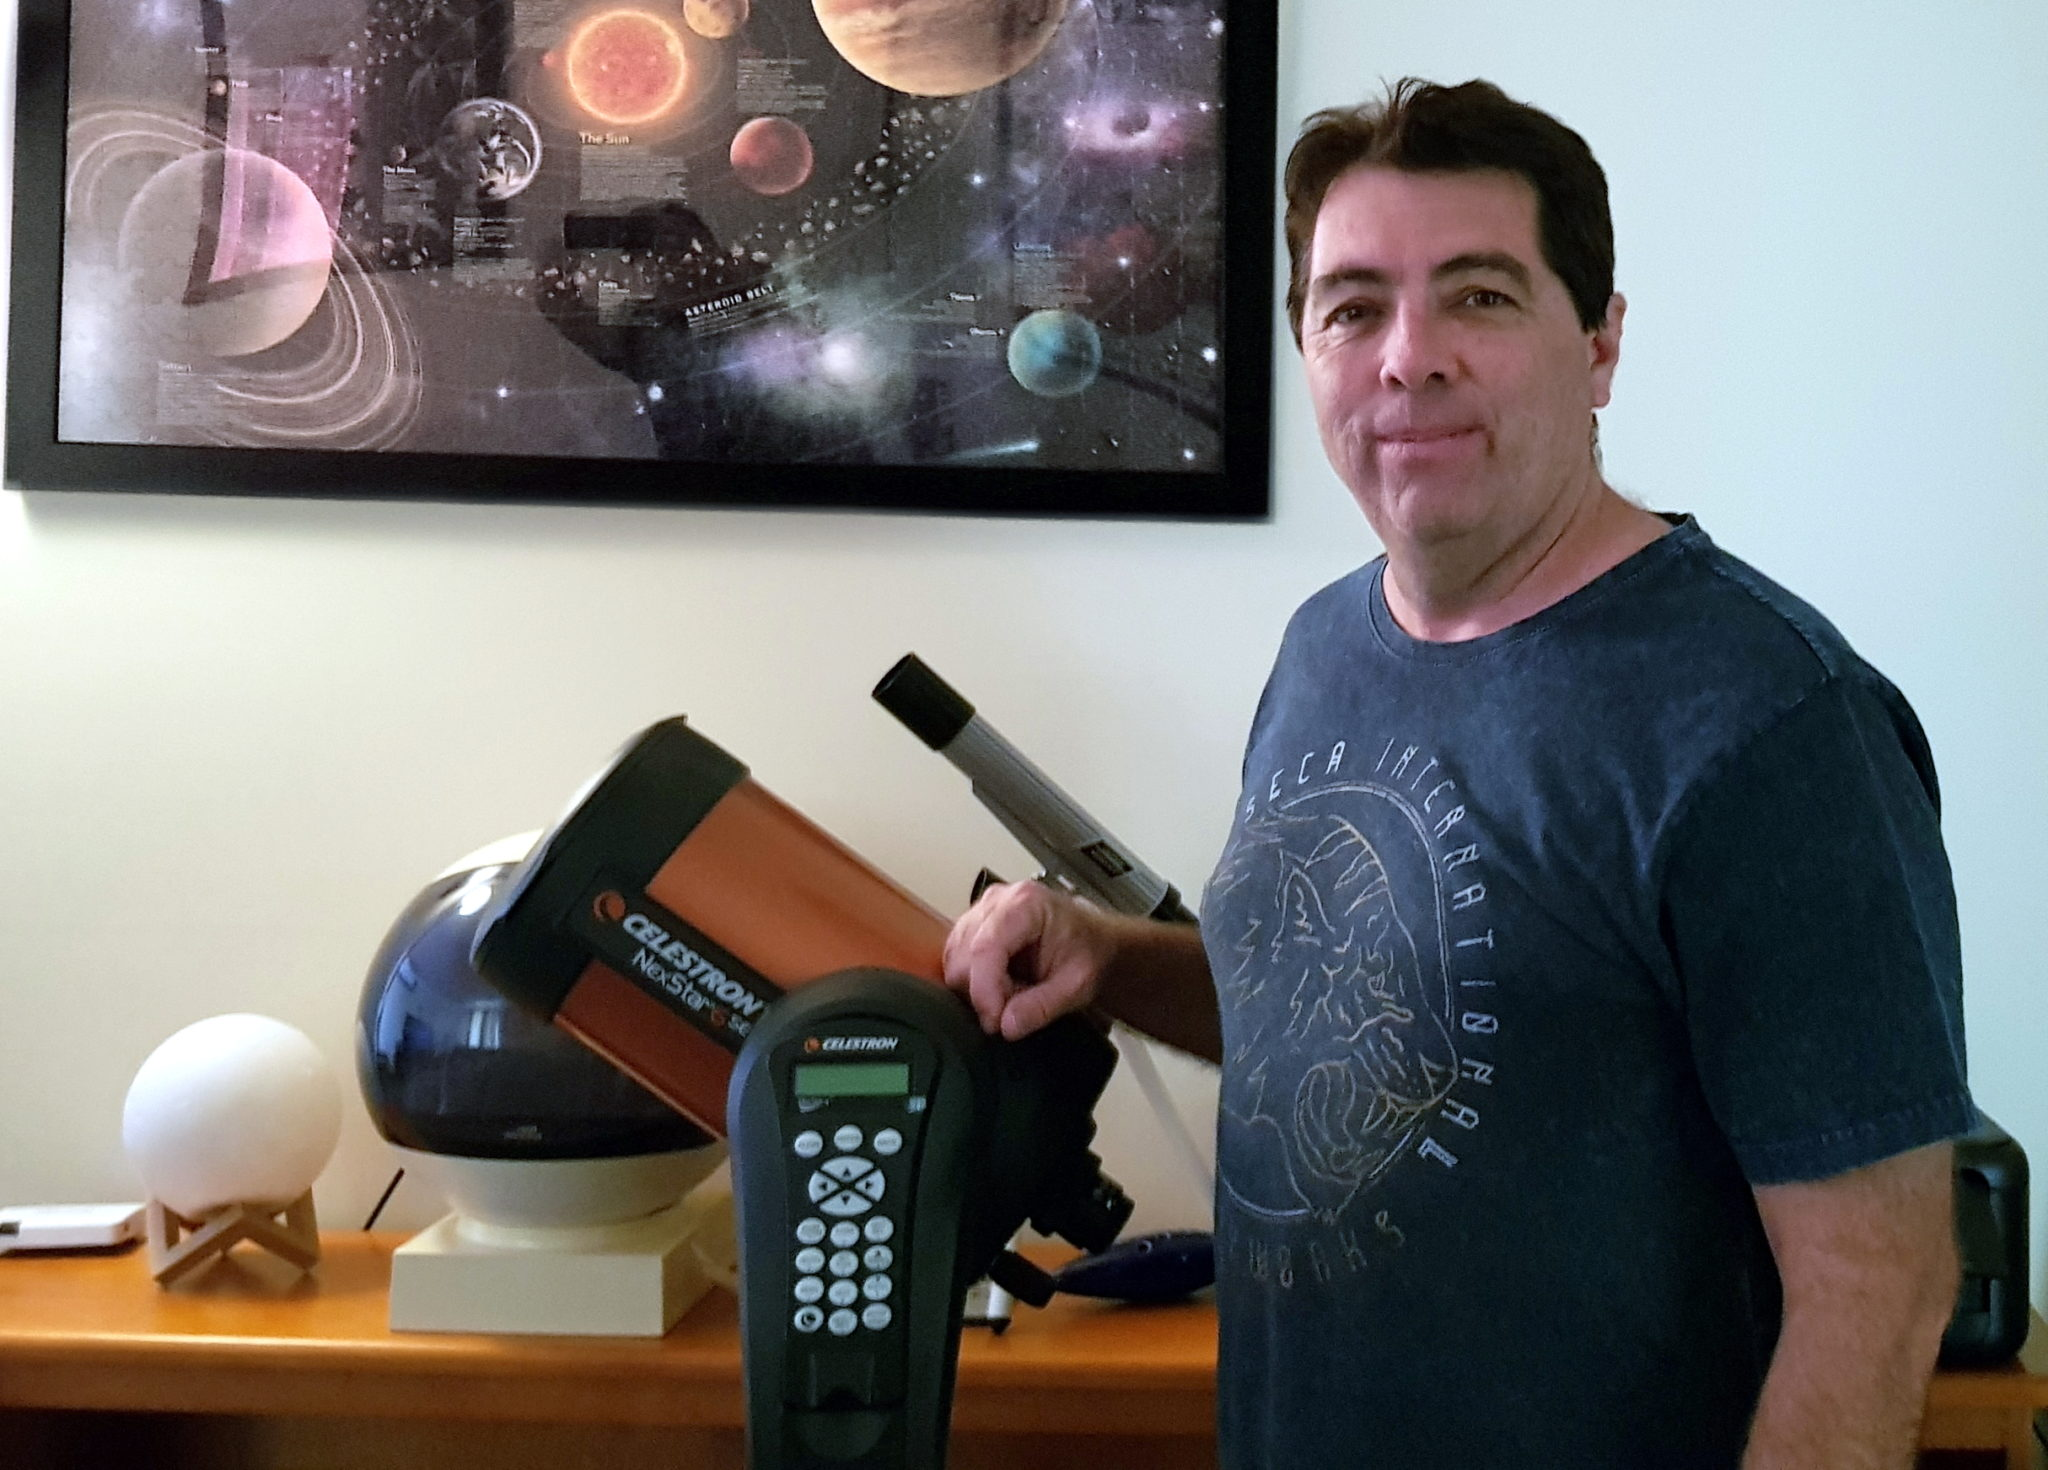 amateur astronomer Craig Collins